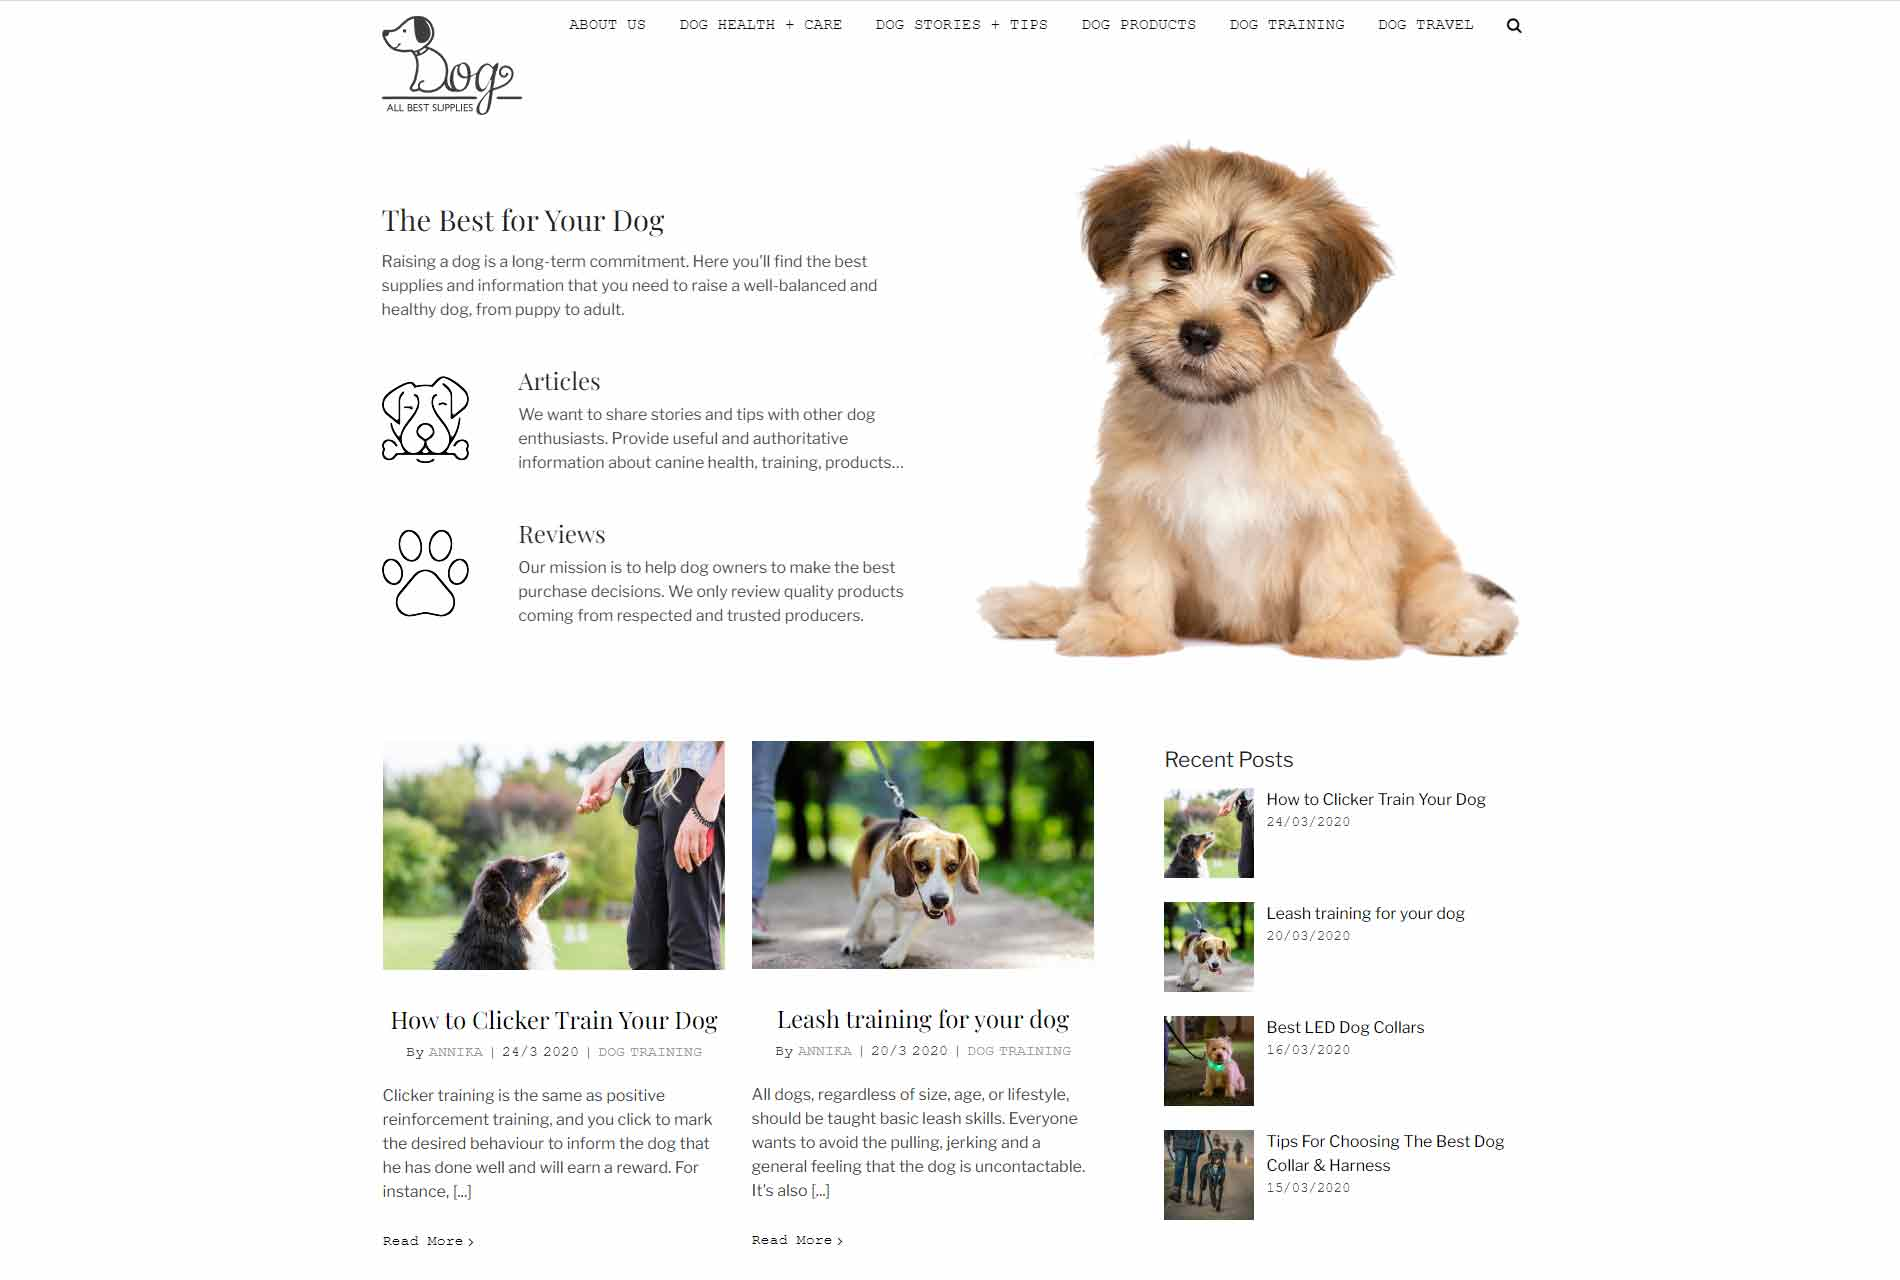 anweb design All Best Dog Supplies